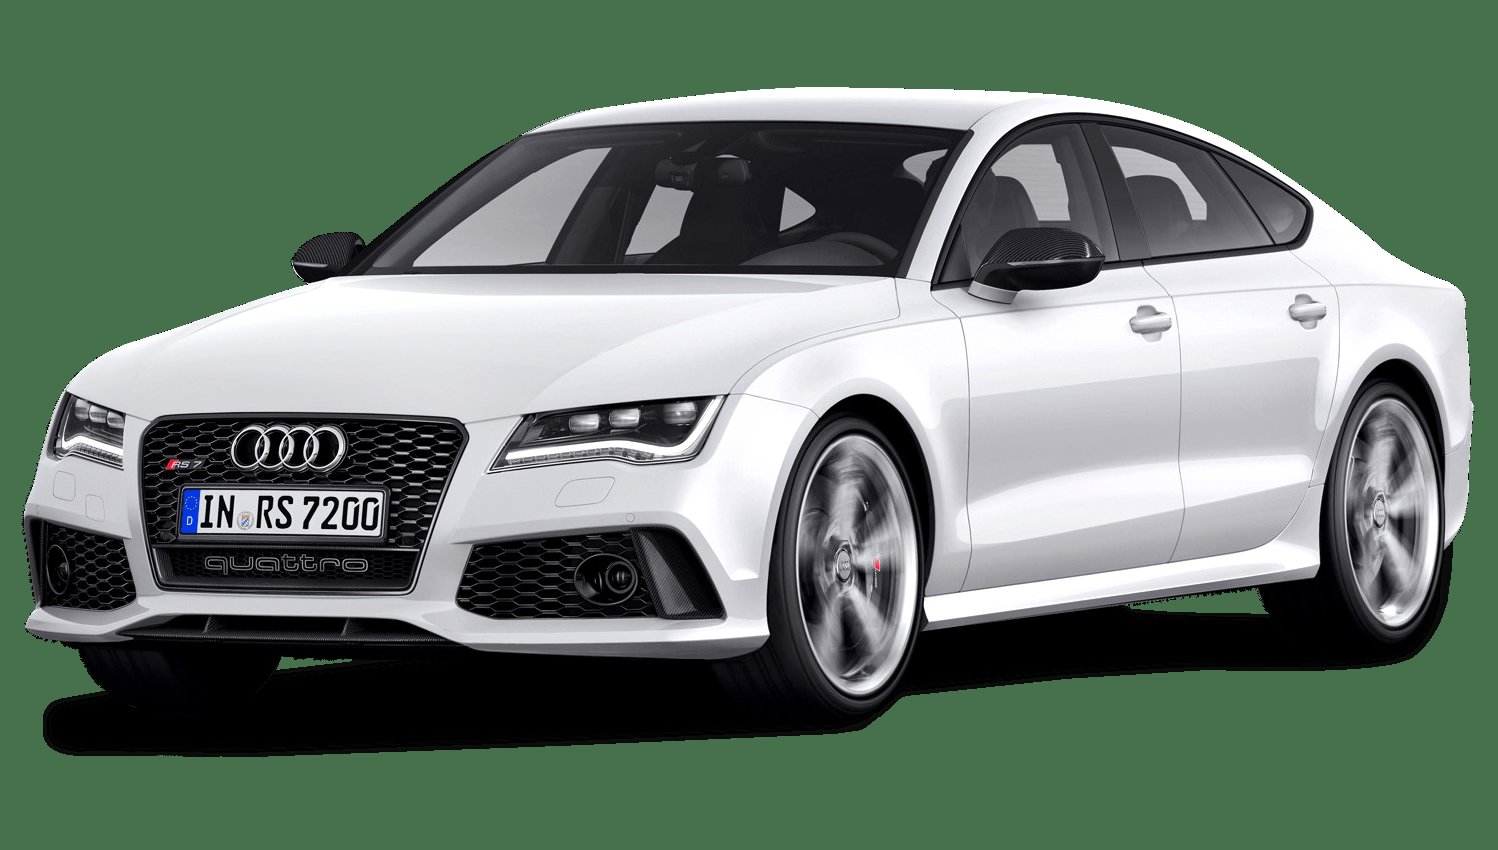 Latest Audi Rs7 Png Image Pngpix Free Download